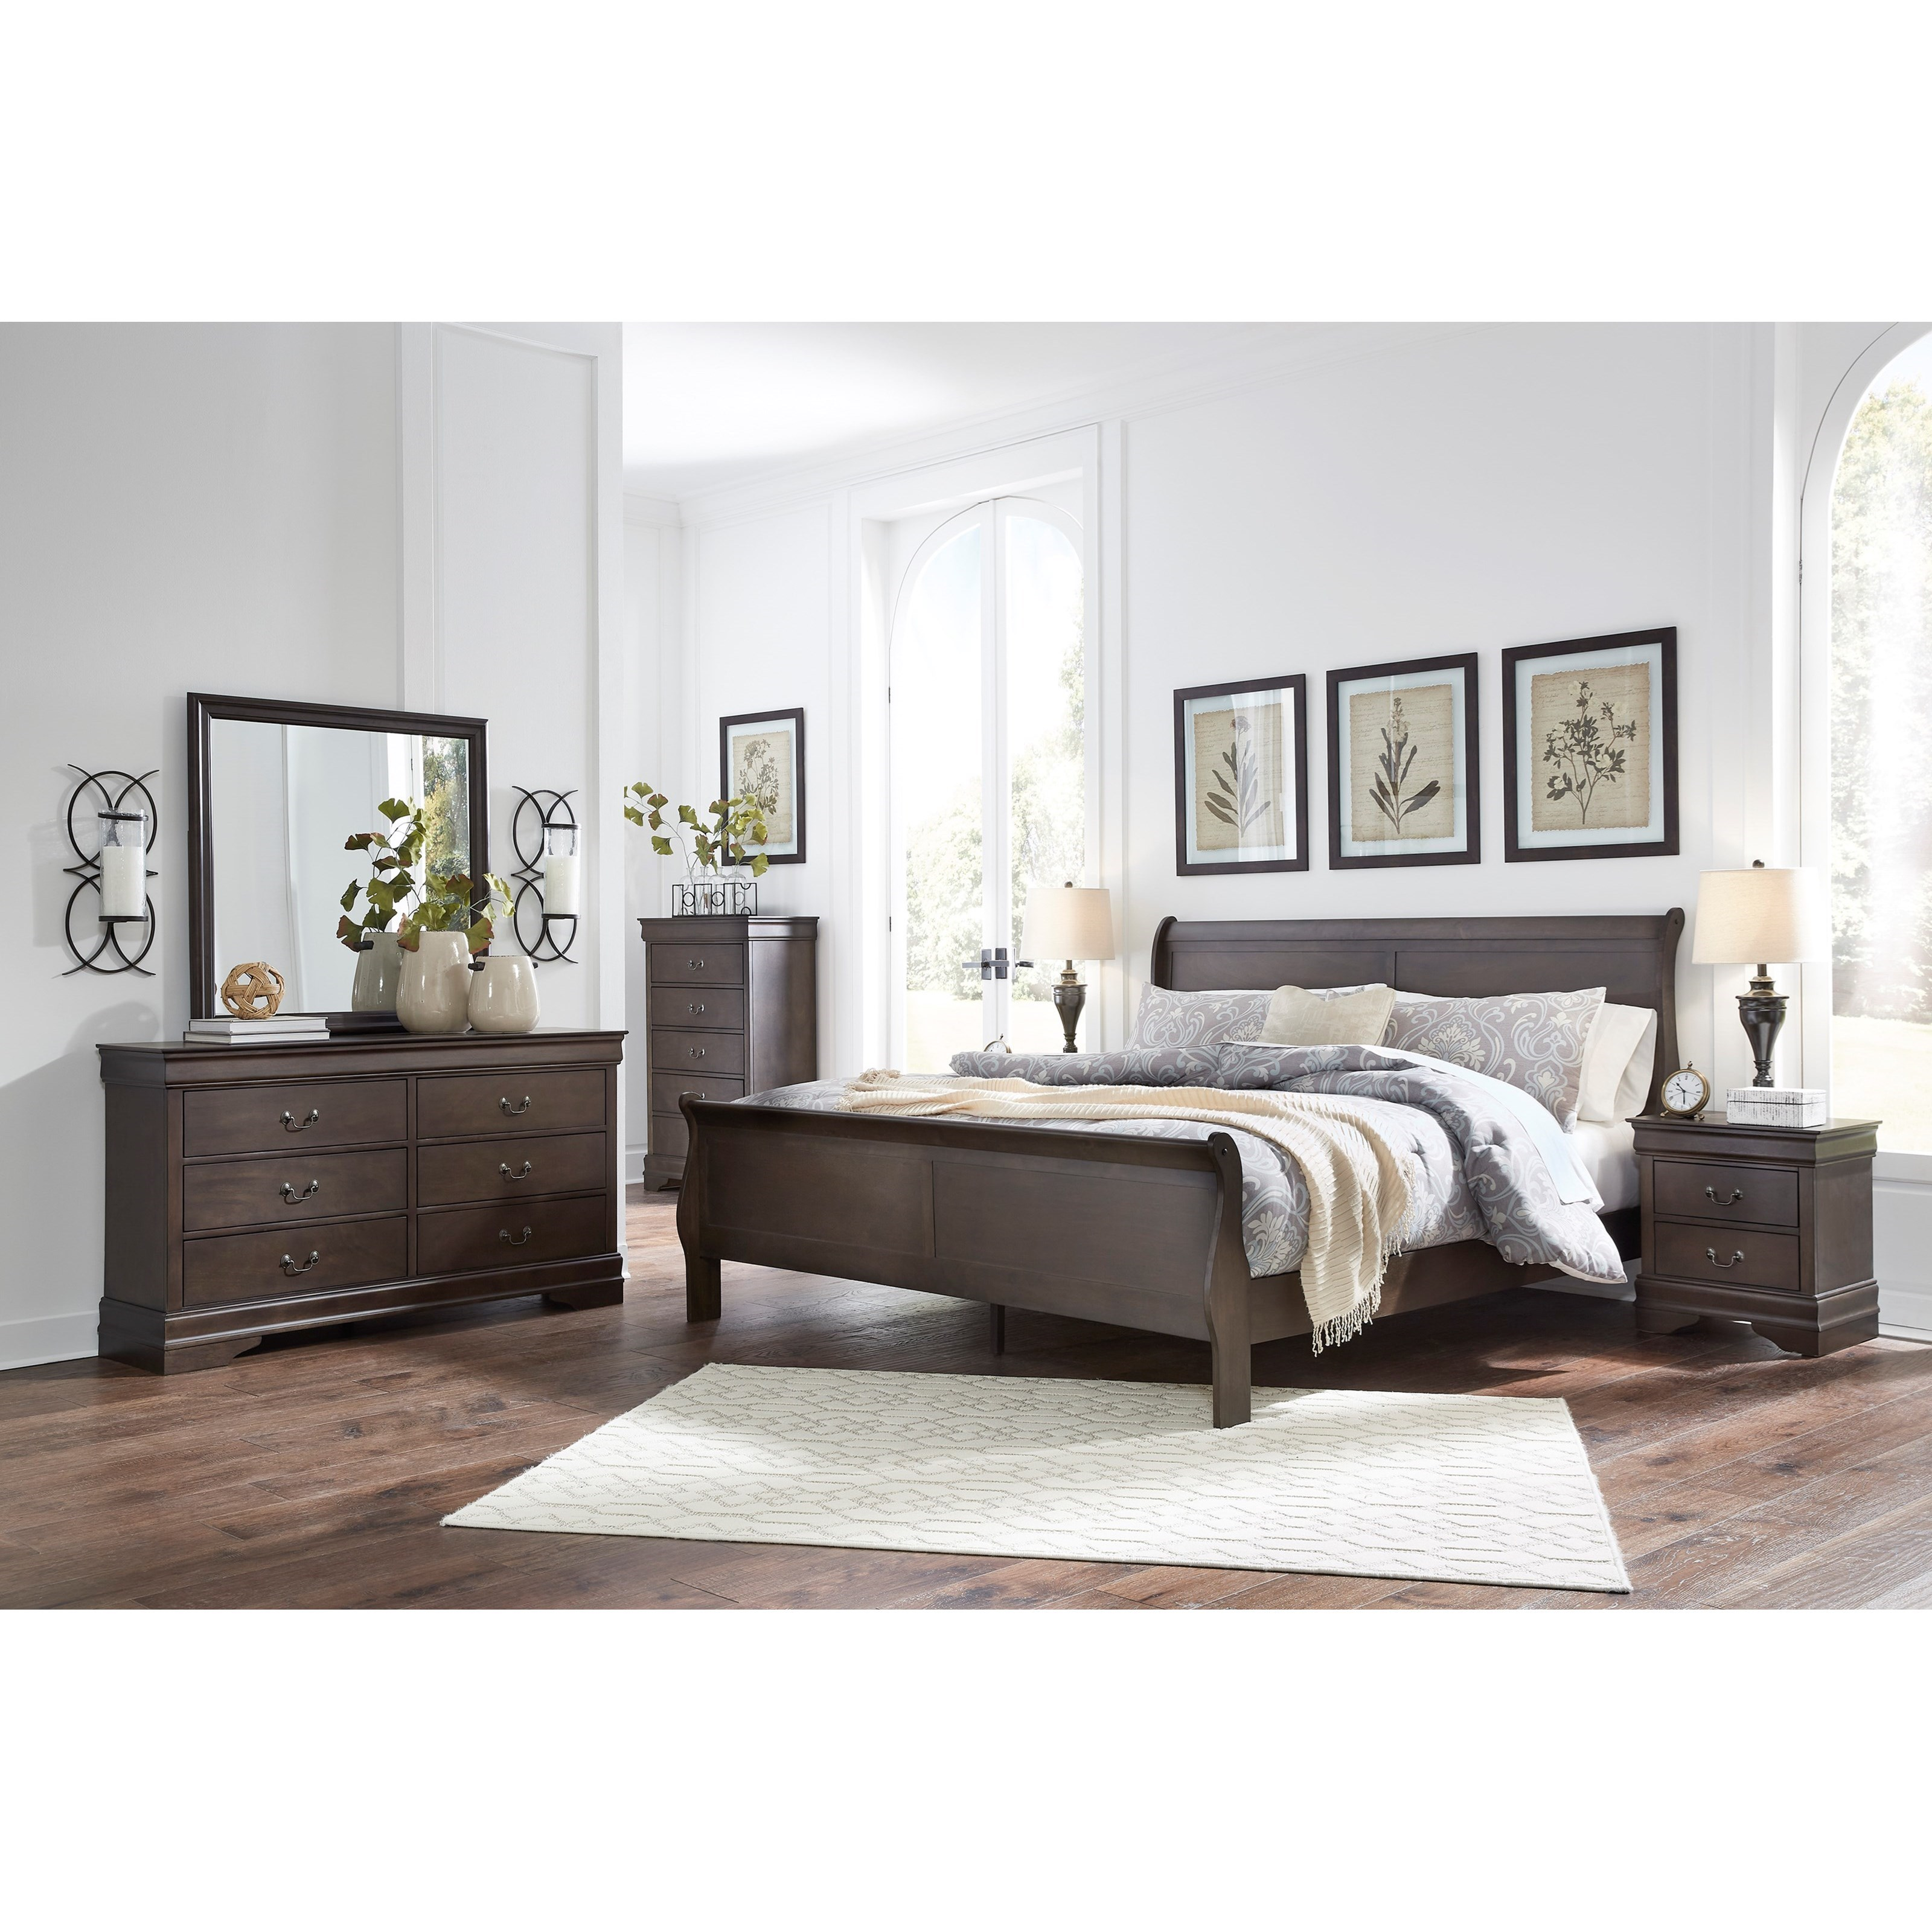 Leewarden California King Bedroom Group by Signature Design by Ashley at Northeast Factory Direct